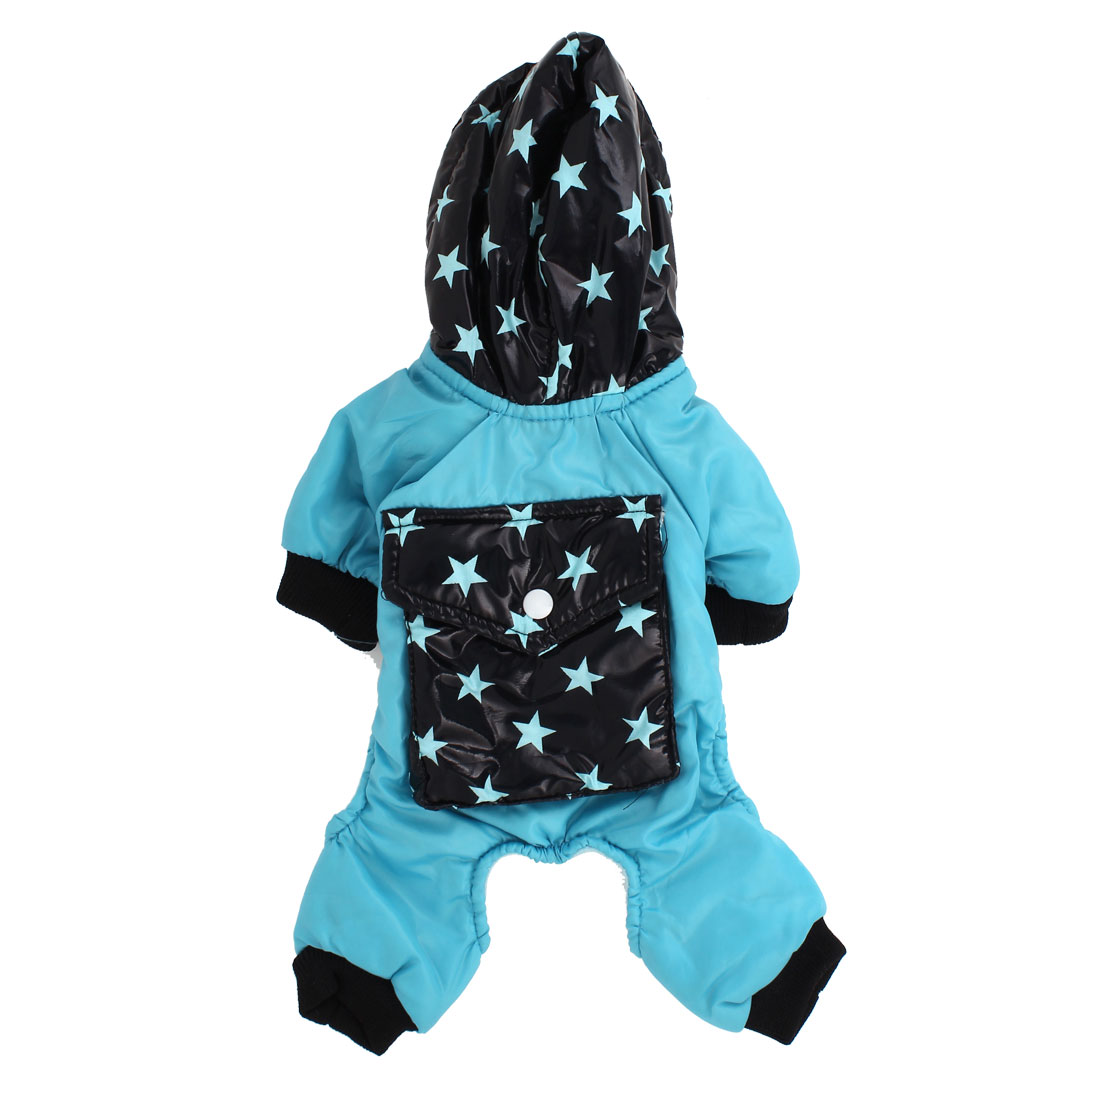 Pet Dog Doggy Pentagram Pattern Hooded Apparel Clothes Coat Blue Black Size XXS